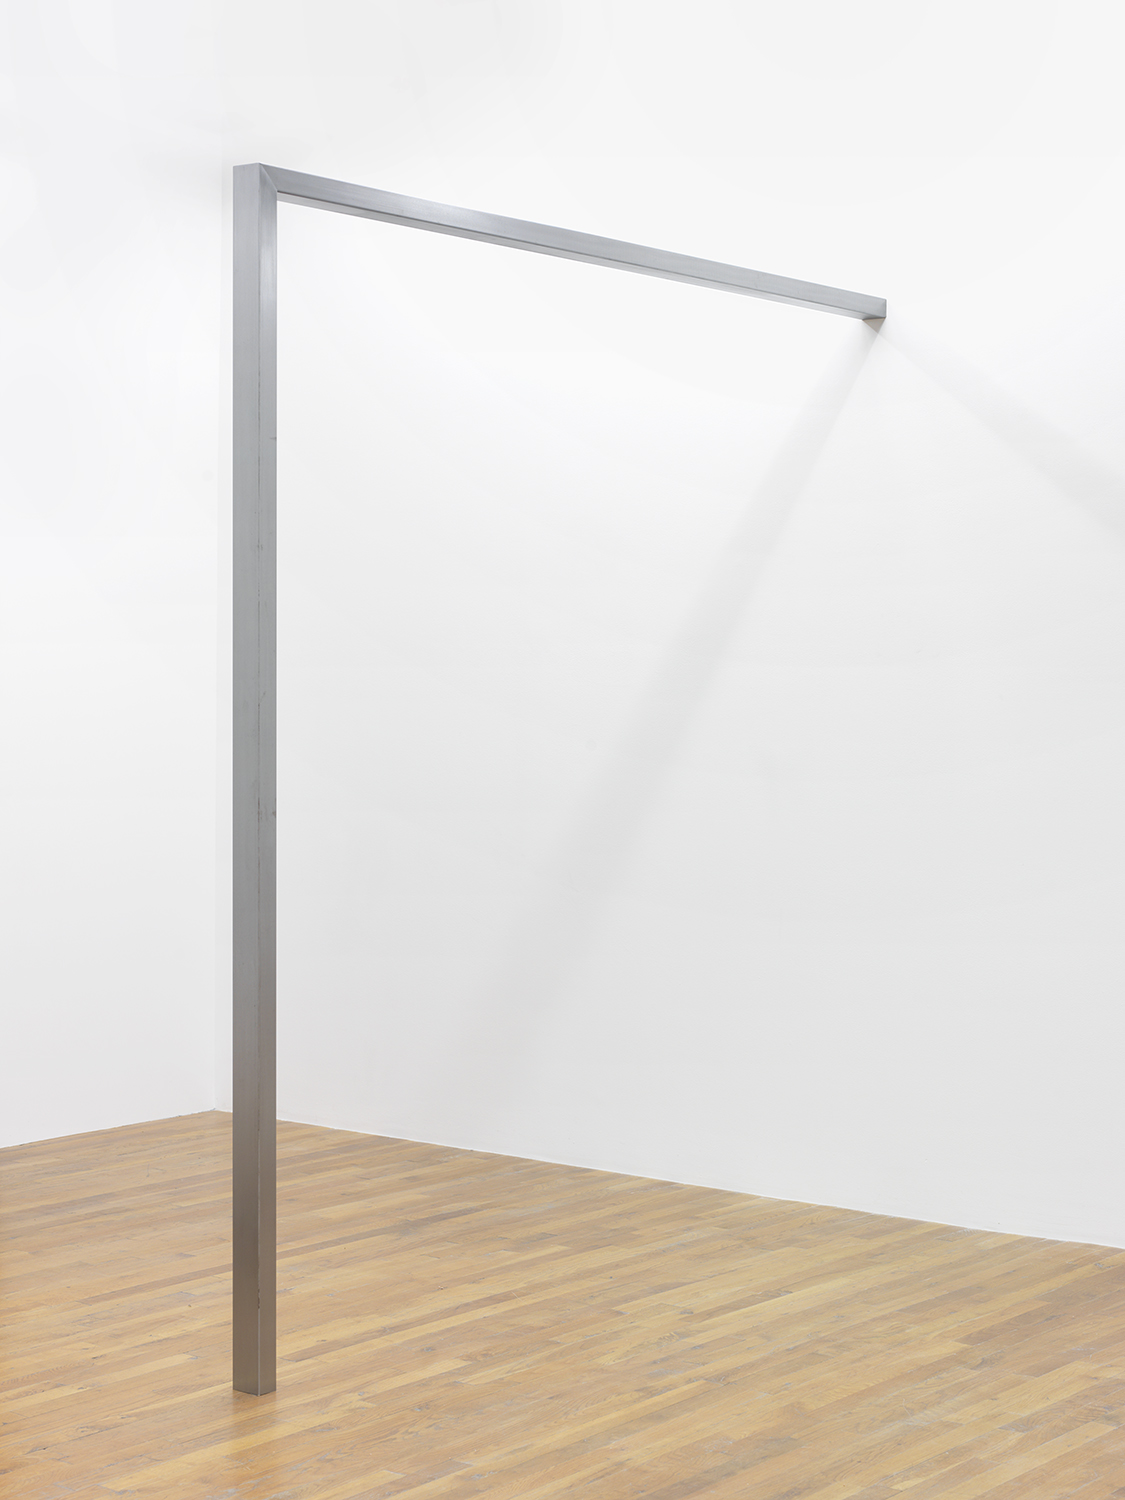 Pole ,2014  Steel  95.5 x 91.5 x 3 inches